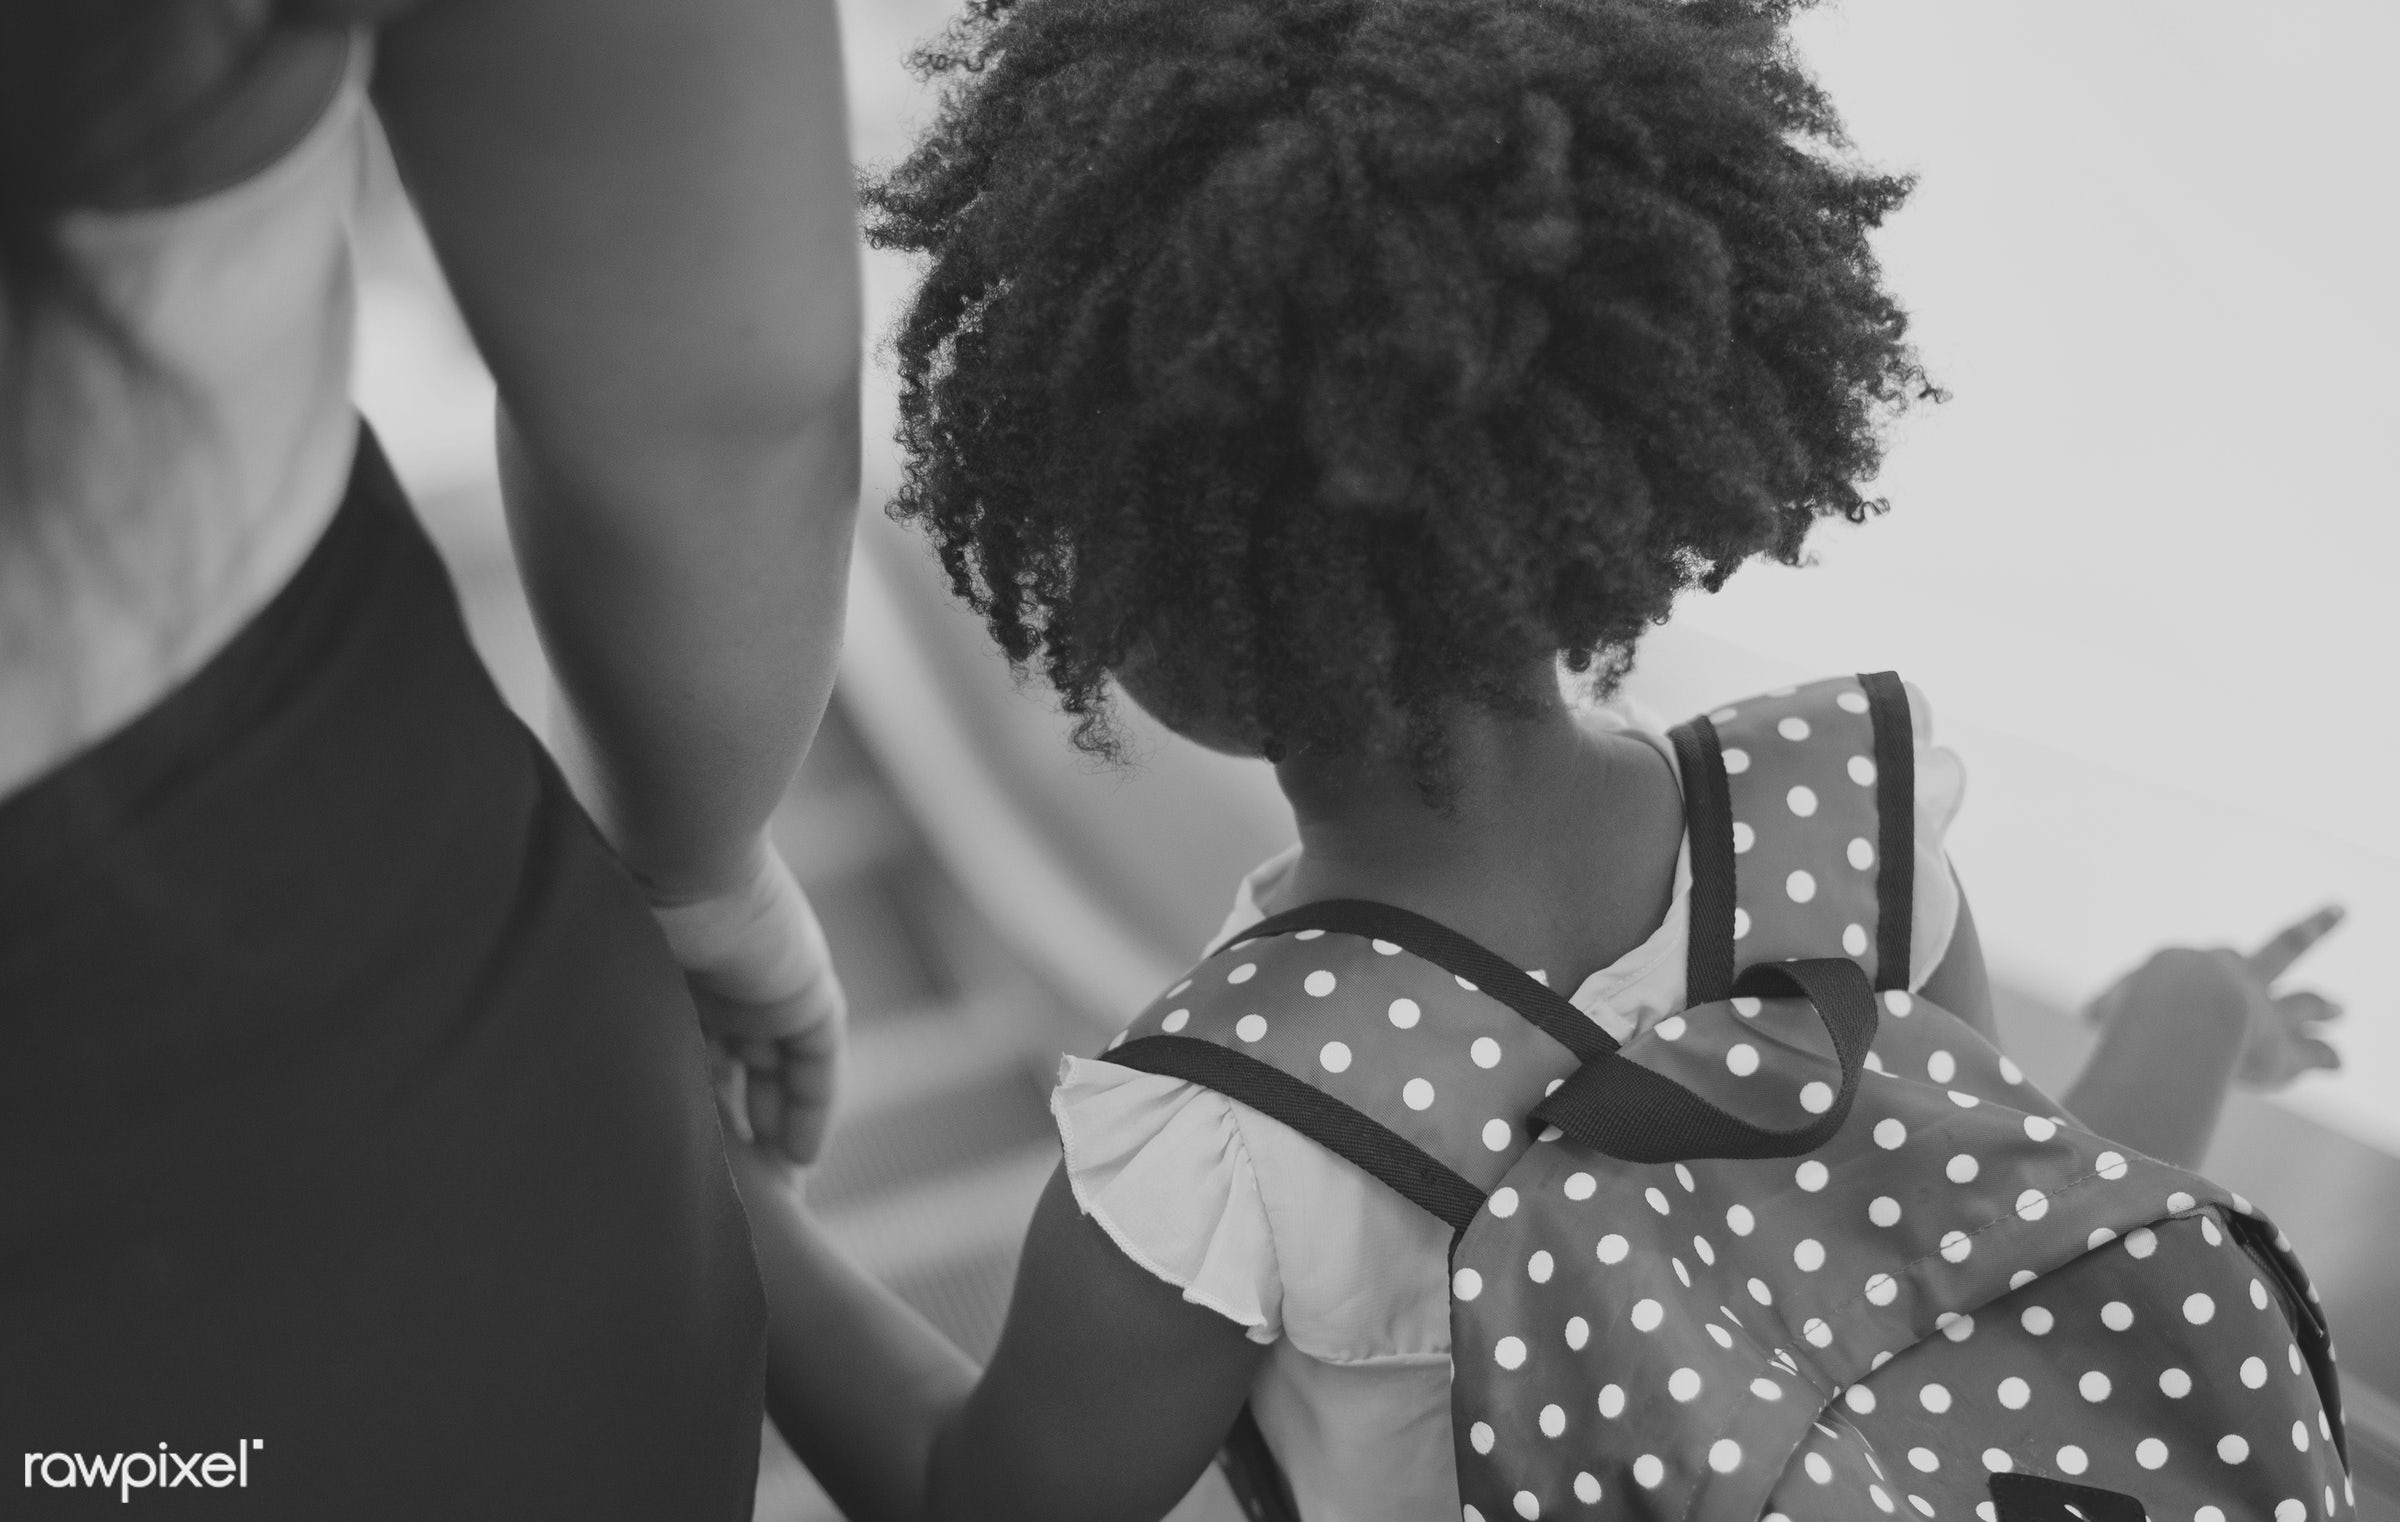 african, holding, children, people, together, kid, hand, child, girl, family, casual, backpack, childhood, generation,...